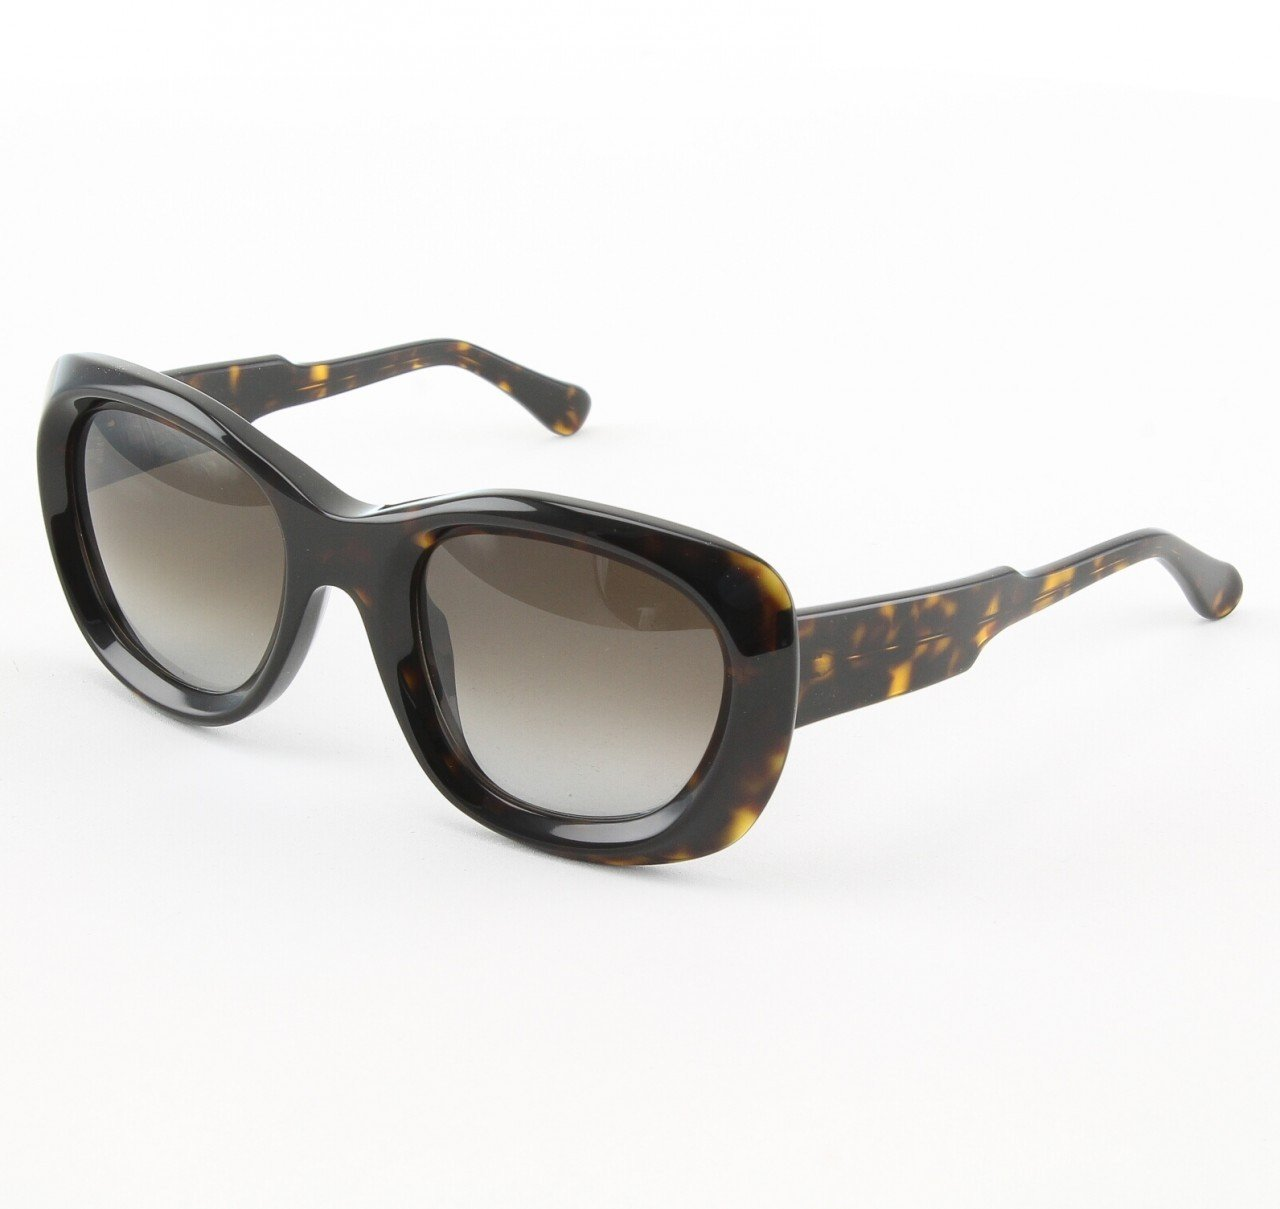 Marni MA178S Sunglasses Col. 01 Dark Tortoise with Brown Gradient Lenses